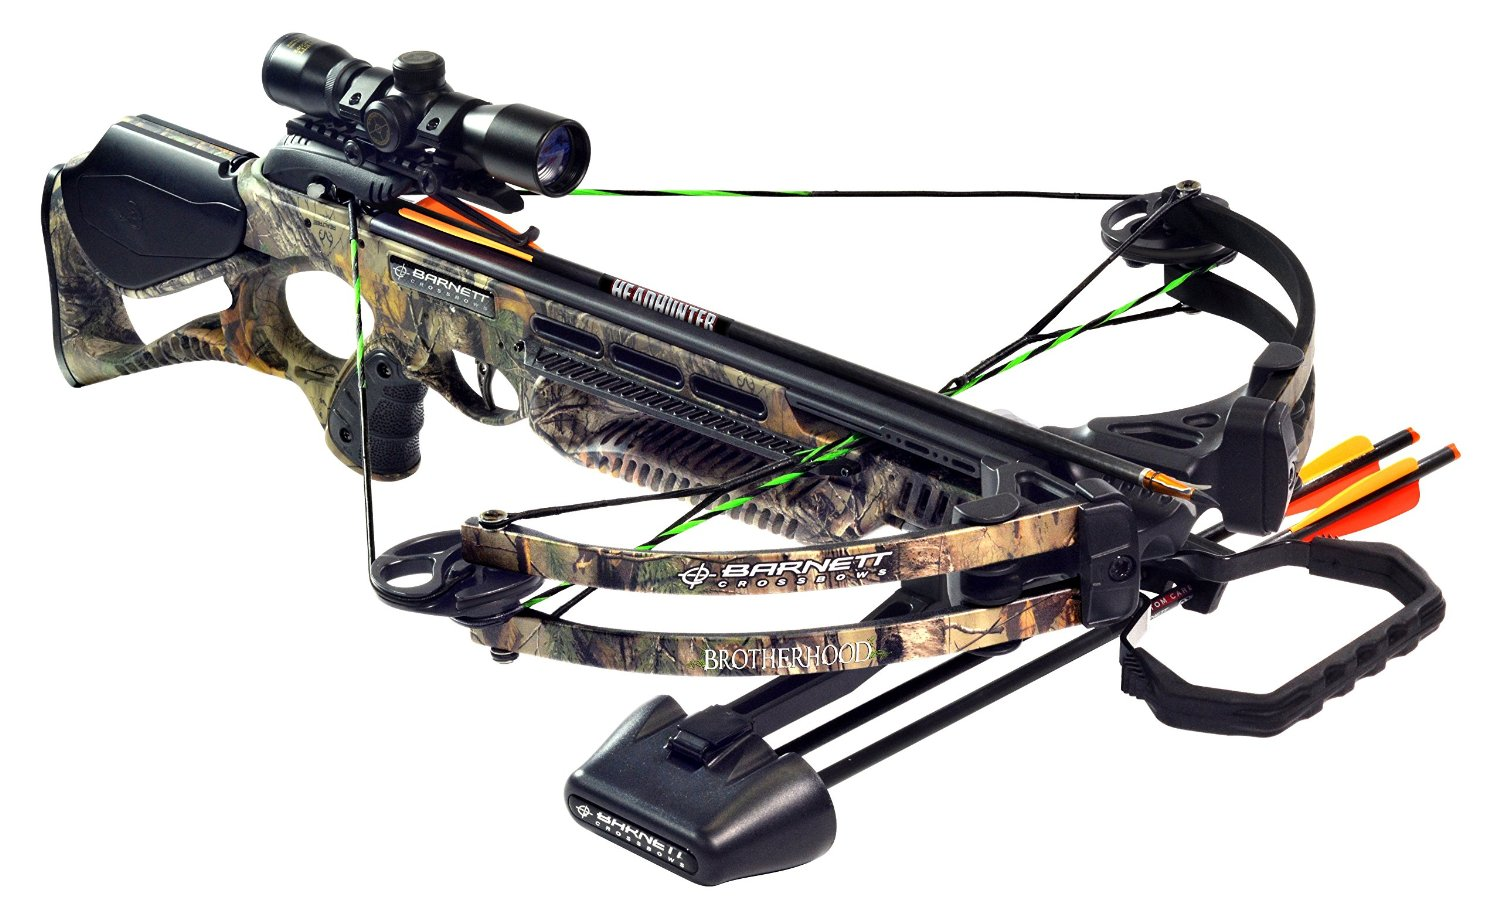 Best Crossbow For The Money Amp 2017 Crossbow Reviews